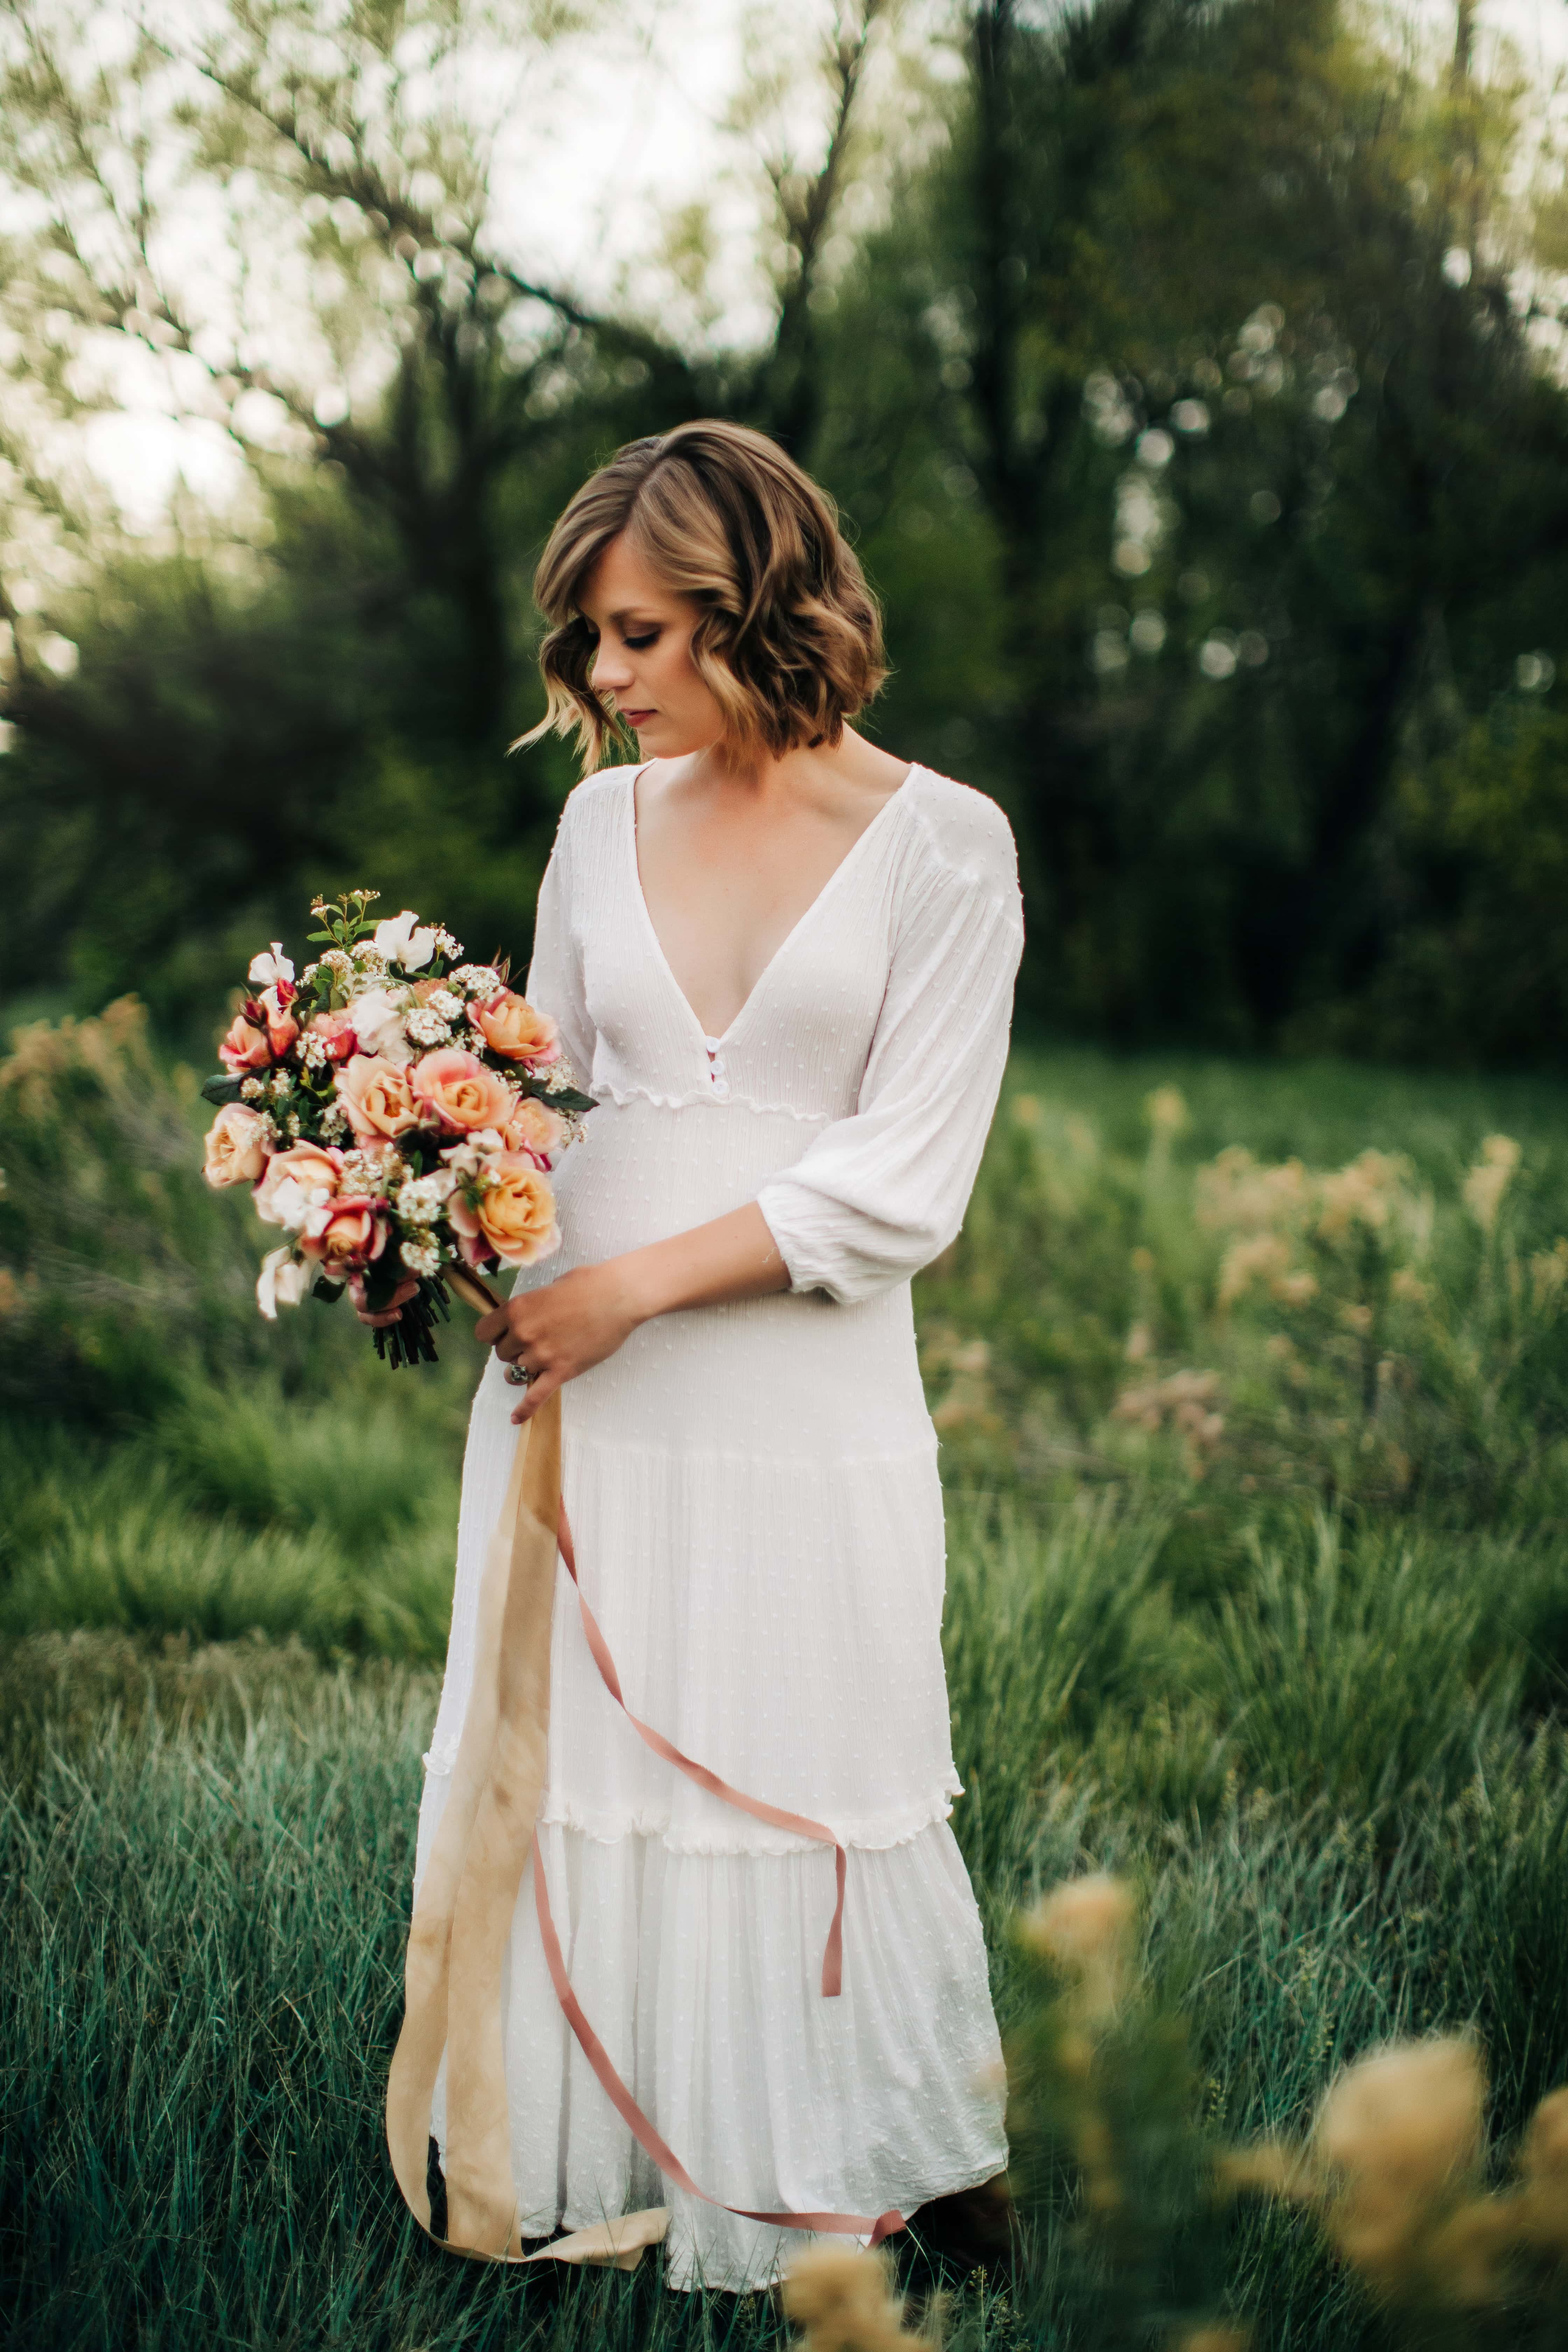 Ashley Sassoon Wildwood Floral Co owner and designer